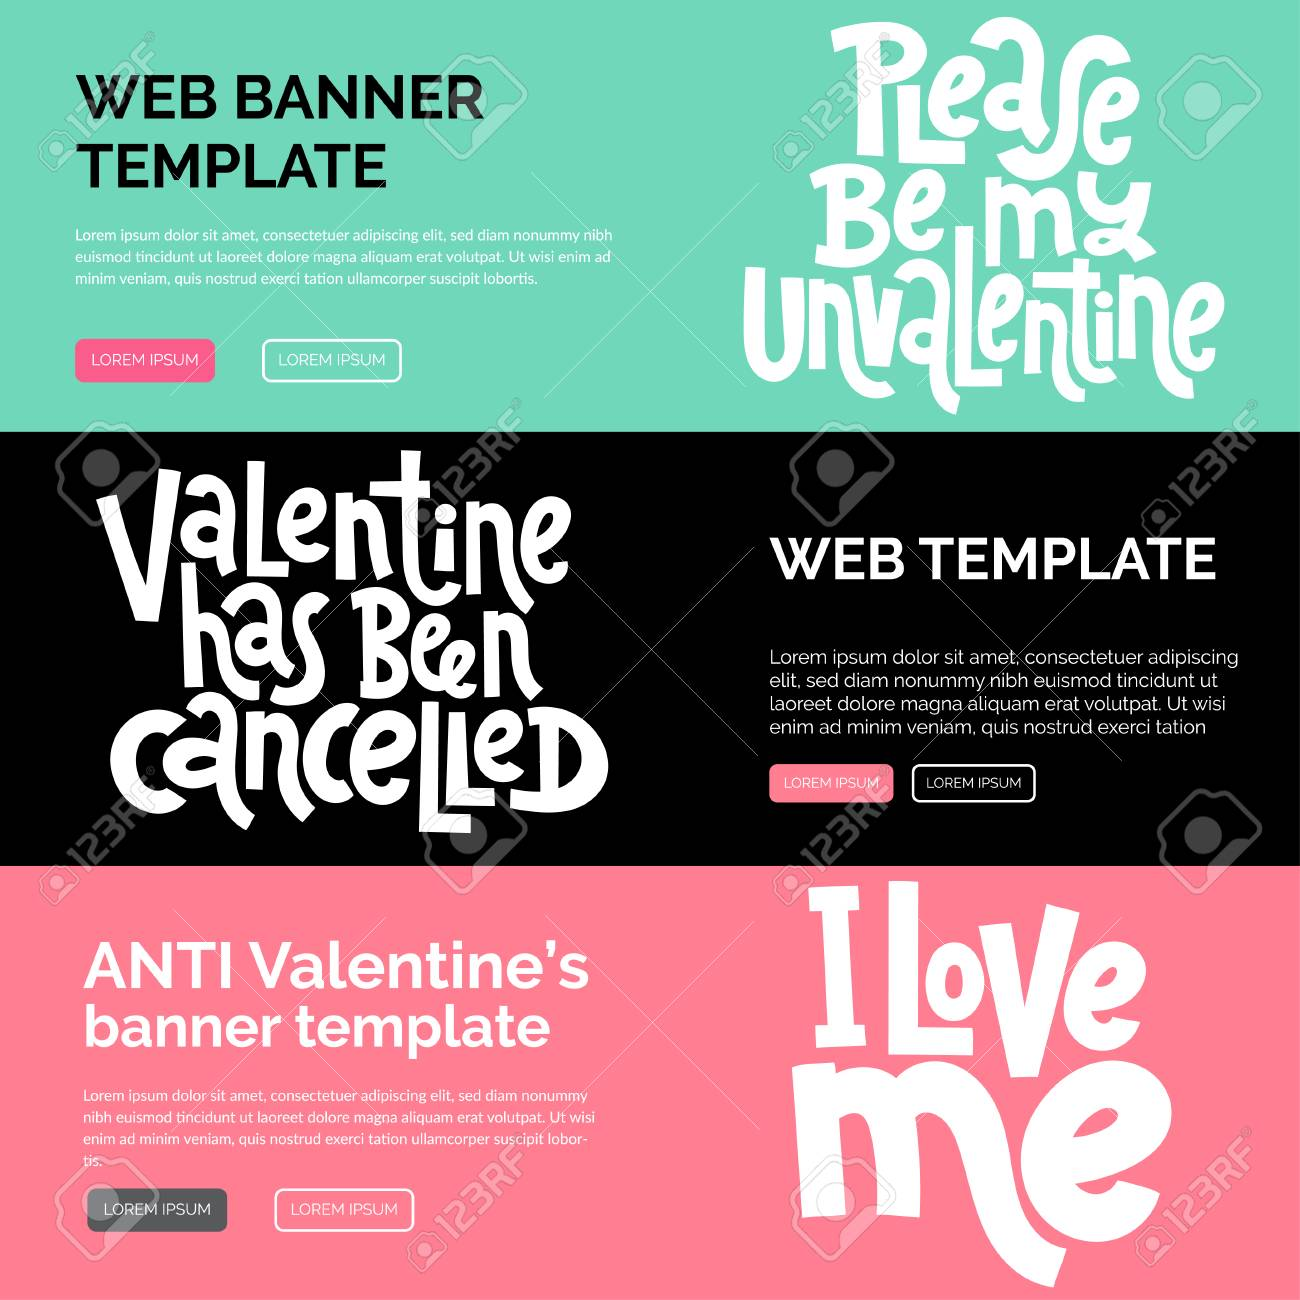 Web or print banners design template with hand drawn vector lettering. Anti Saint Valentine Day, Singles Day slogan stylized typography. Black humor quote for a party, social media. Horizontal layout. - 126343819